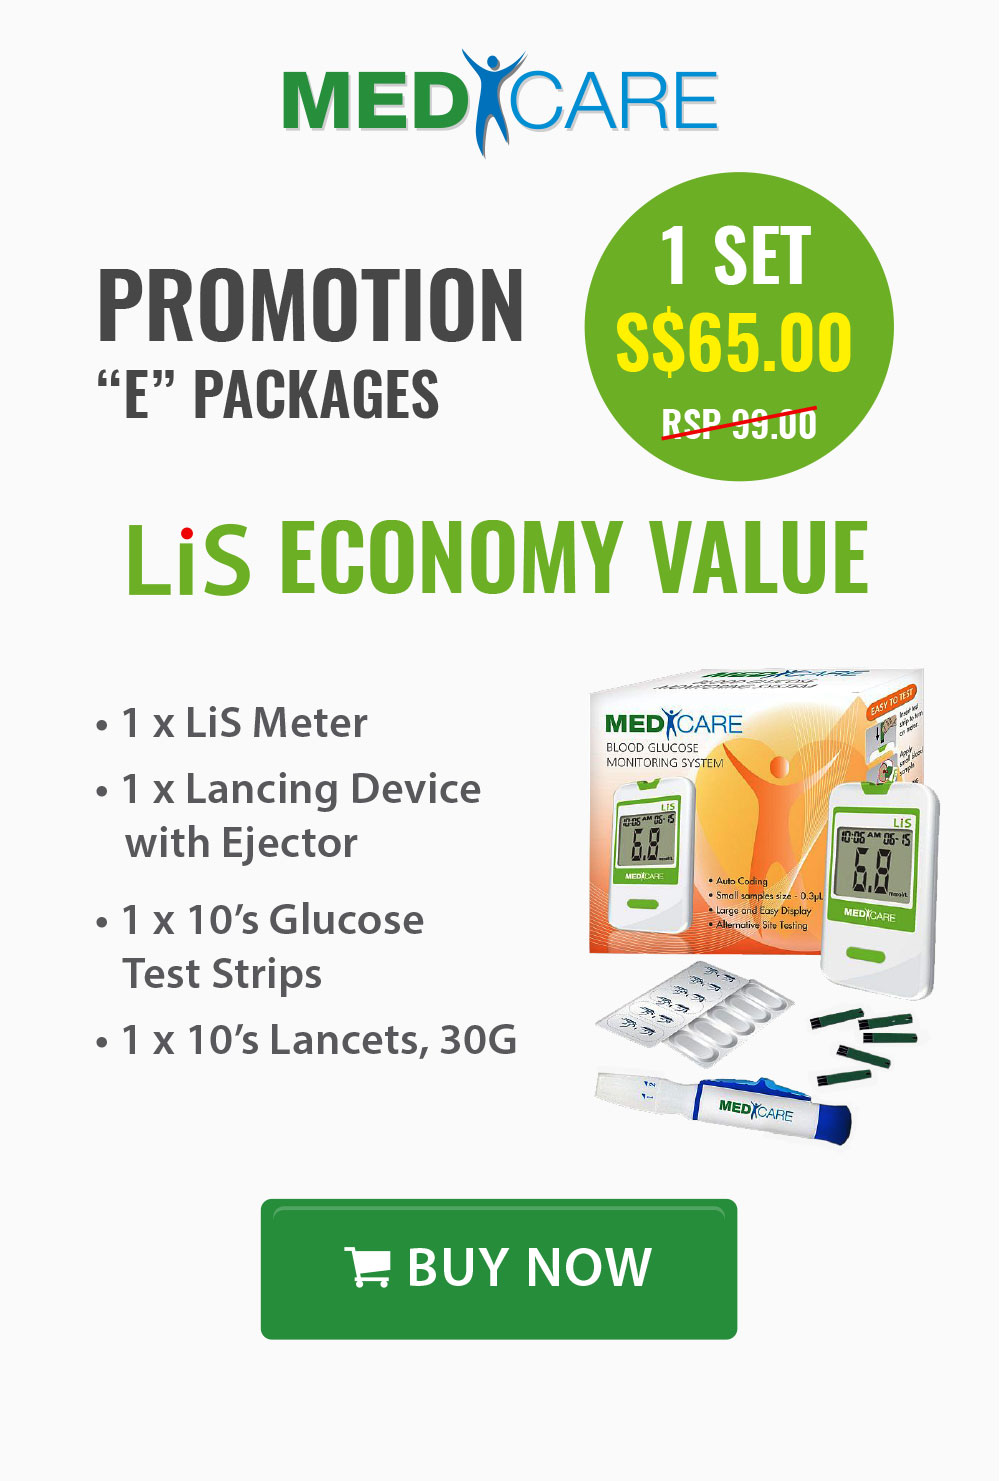 L-Tac-MediCare Promotions Package